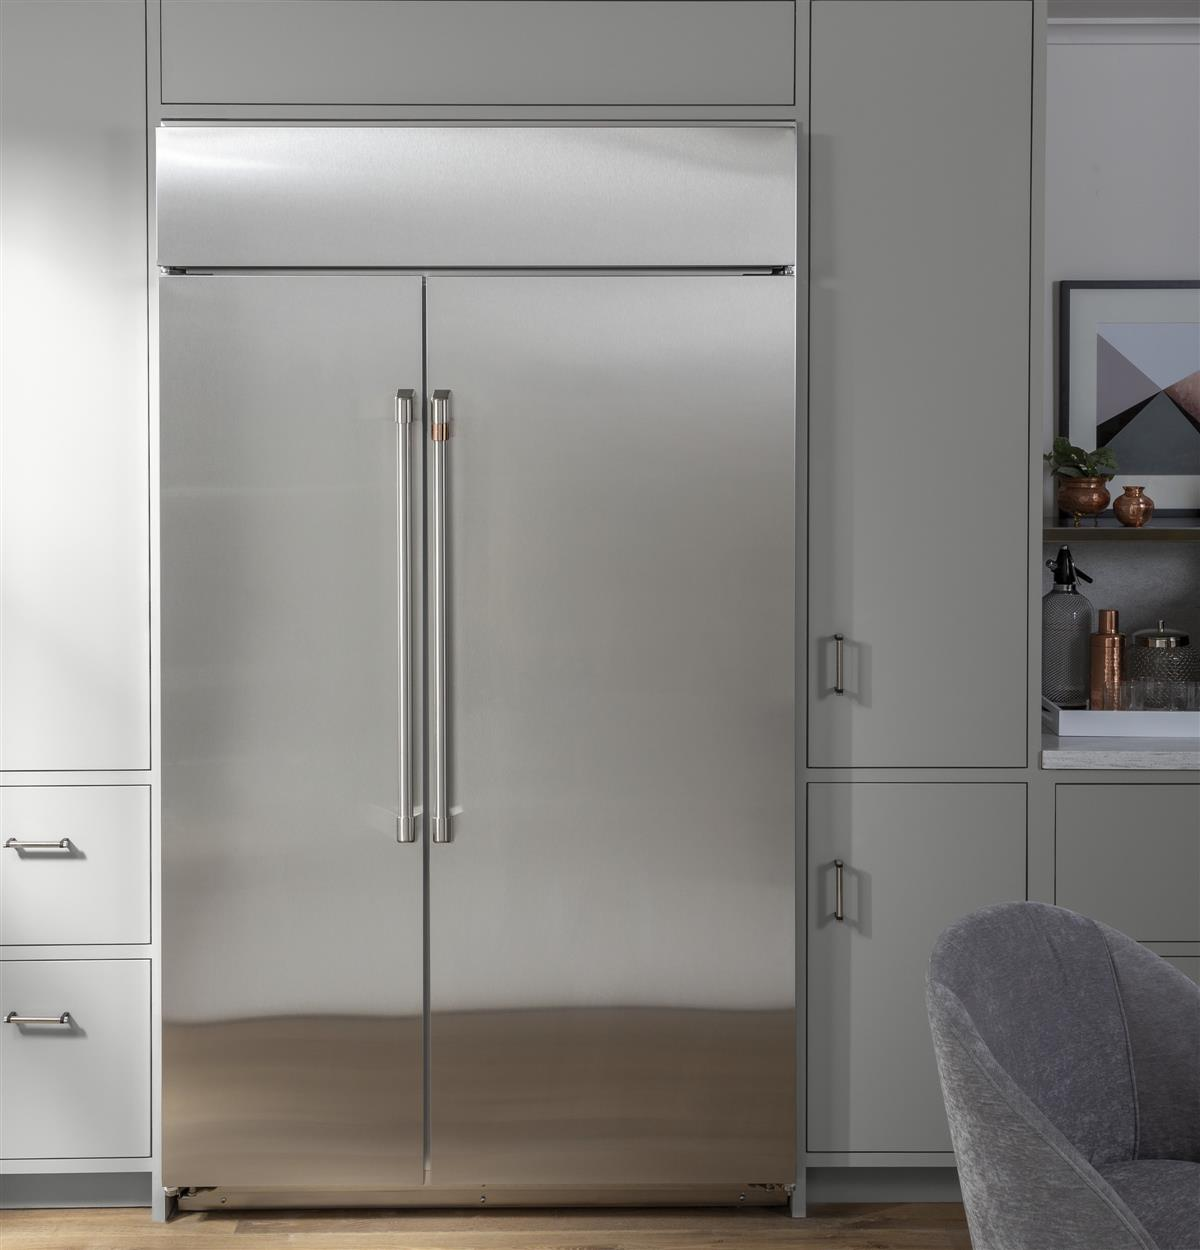 A refrigerator that speaks to your style